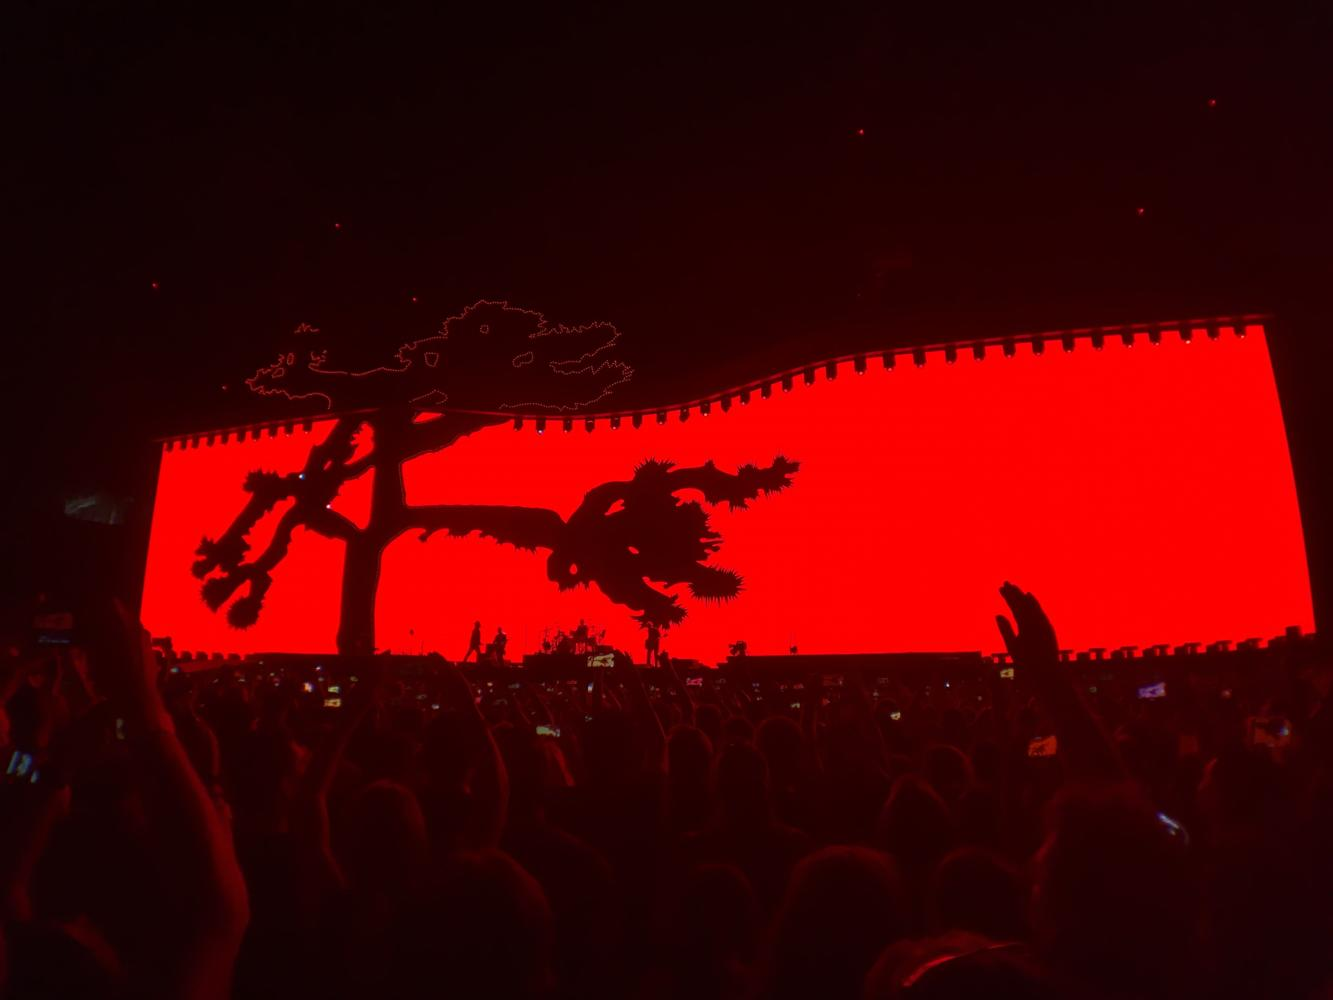 U2 appeared in front of a 200 foot high high resolution screen for the whole show at the Rose Bowl in Pasadena.